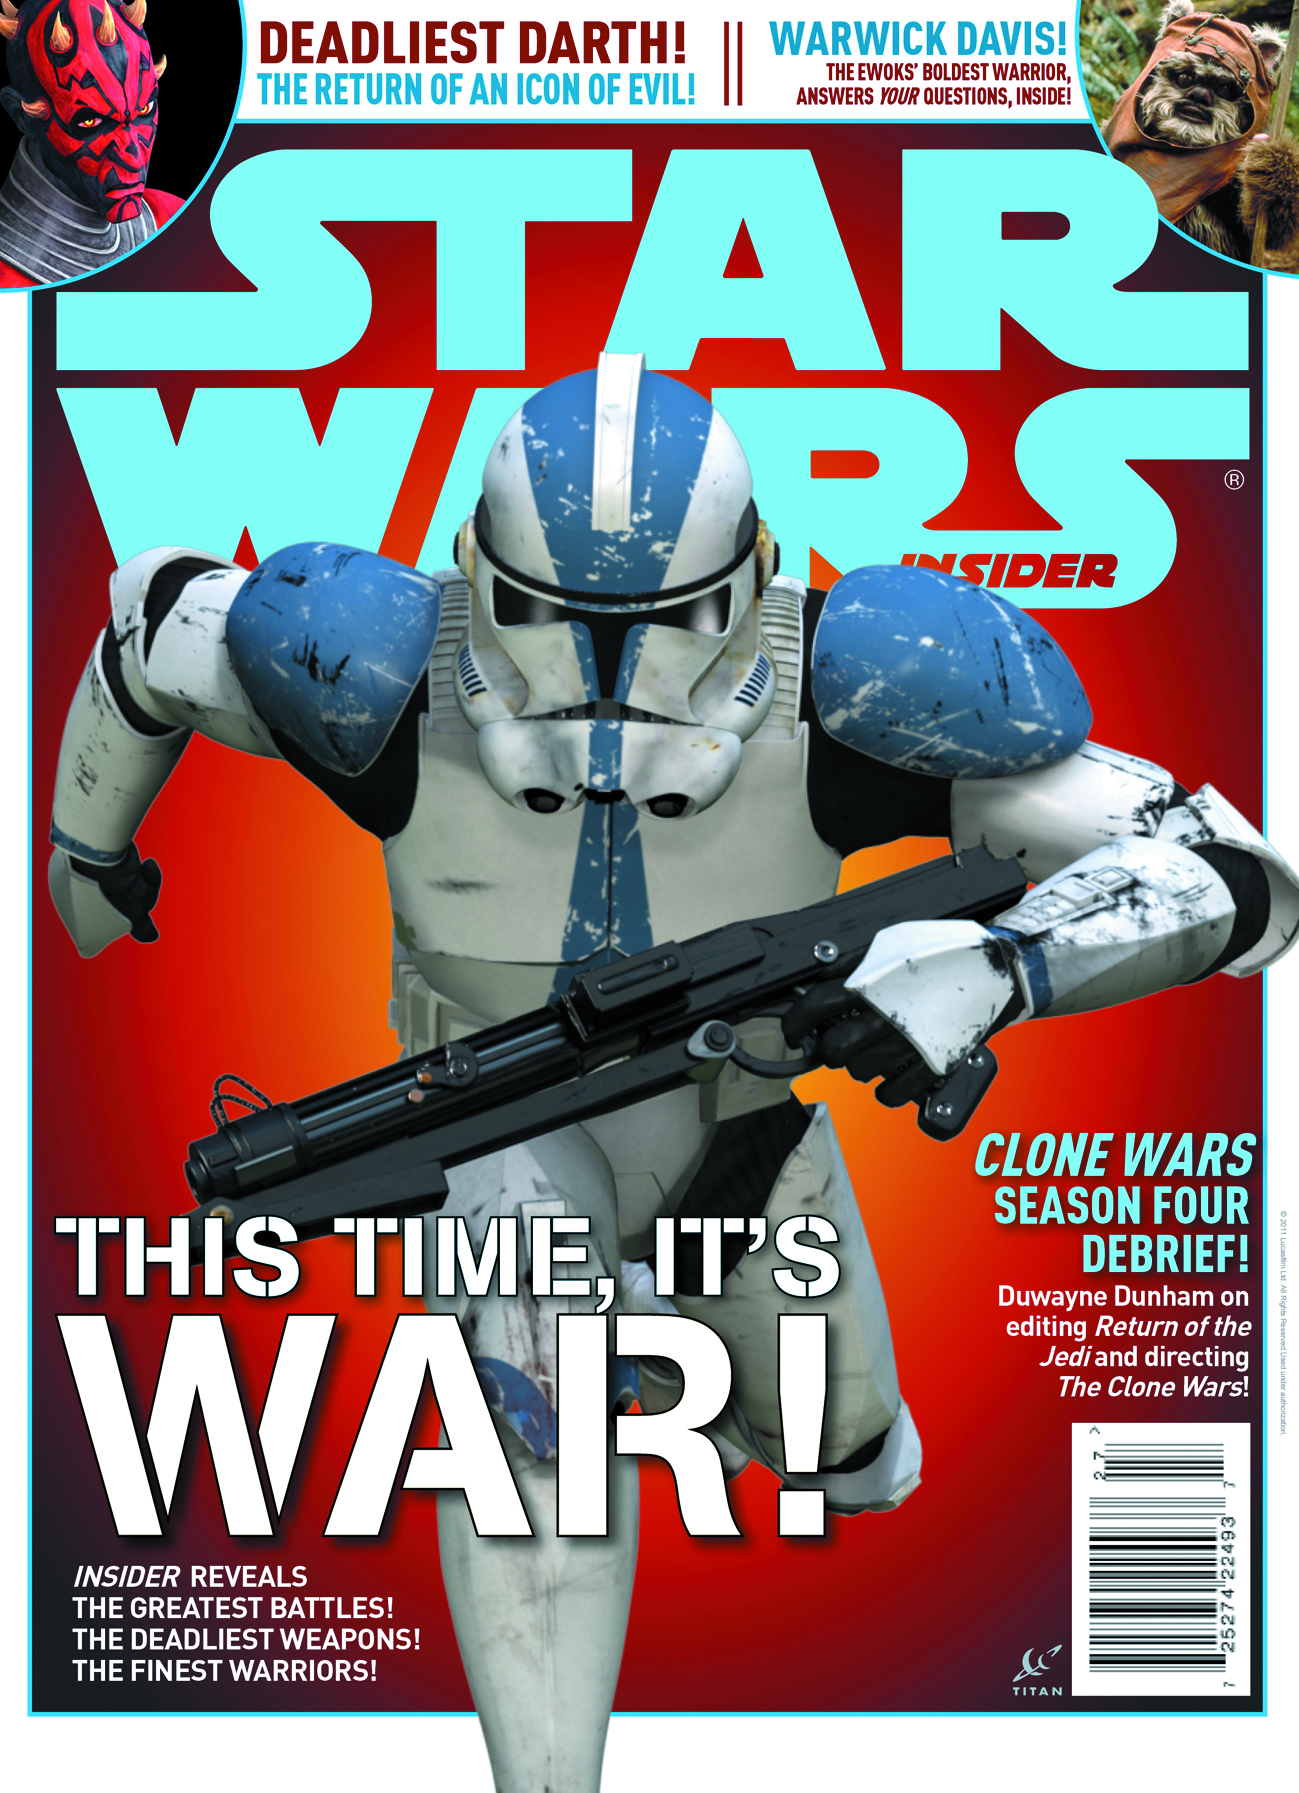 STAR WARS INSIDER #133 SPECIAL NEWSSTAND ED